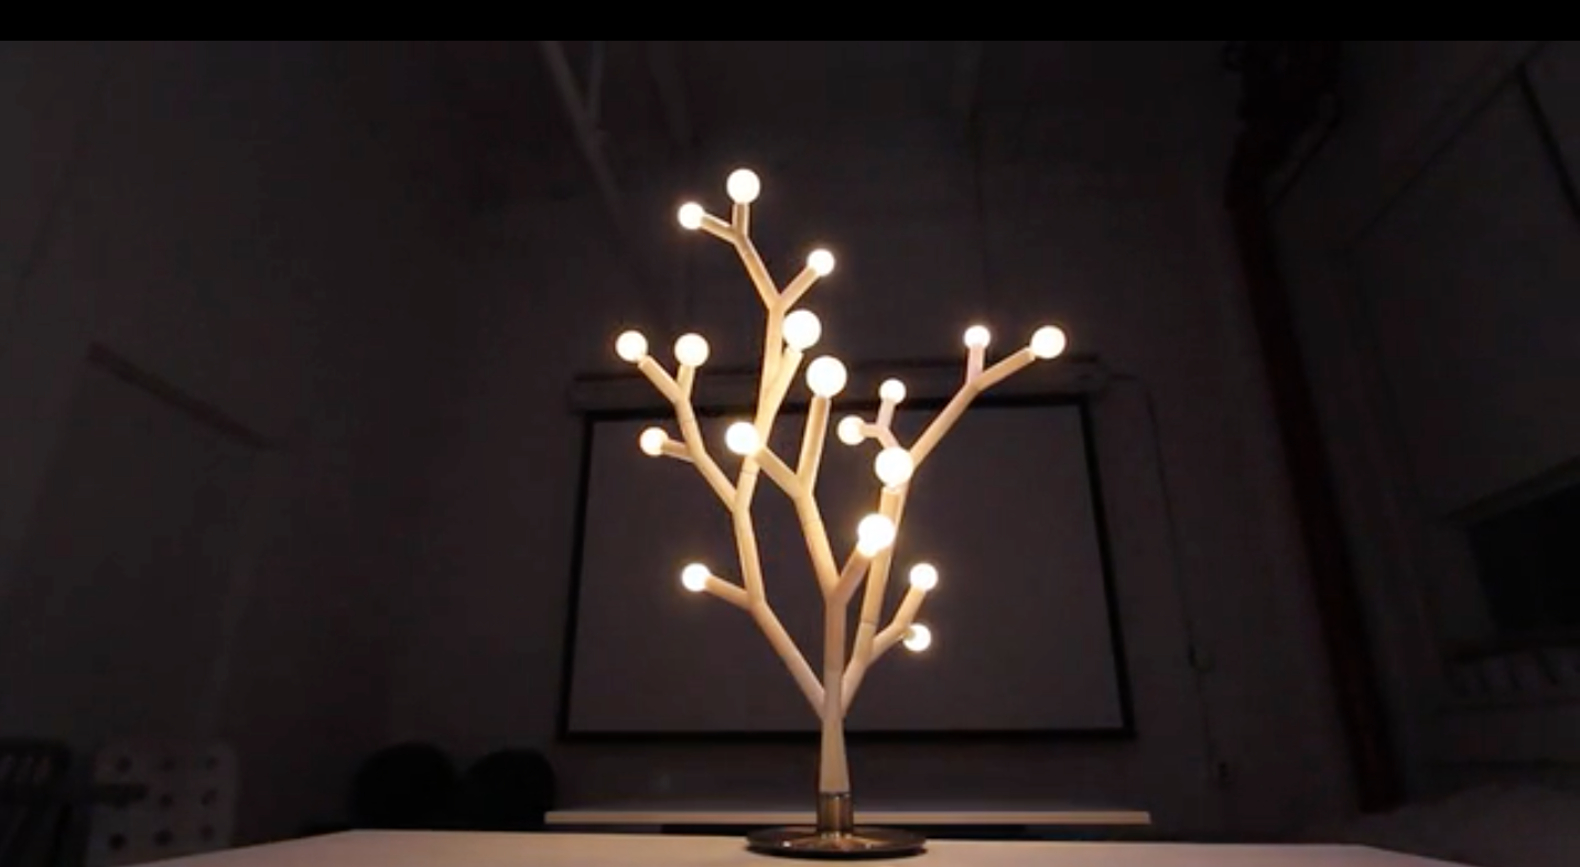 design your own lighting. Splyt Light Kits Let You Build Your Own Glowing Works Of Art Design Lighting